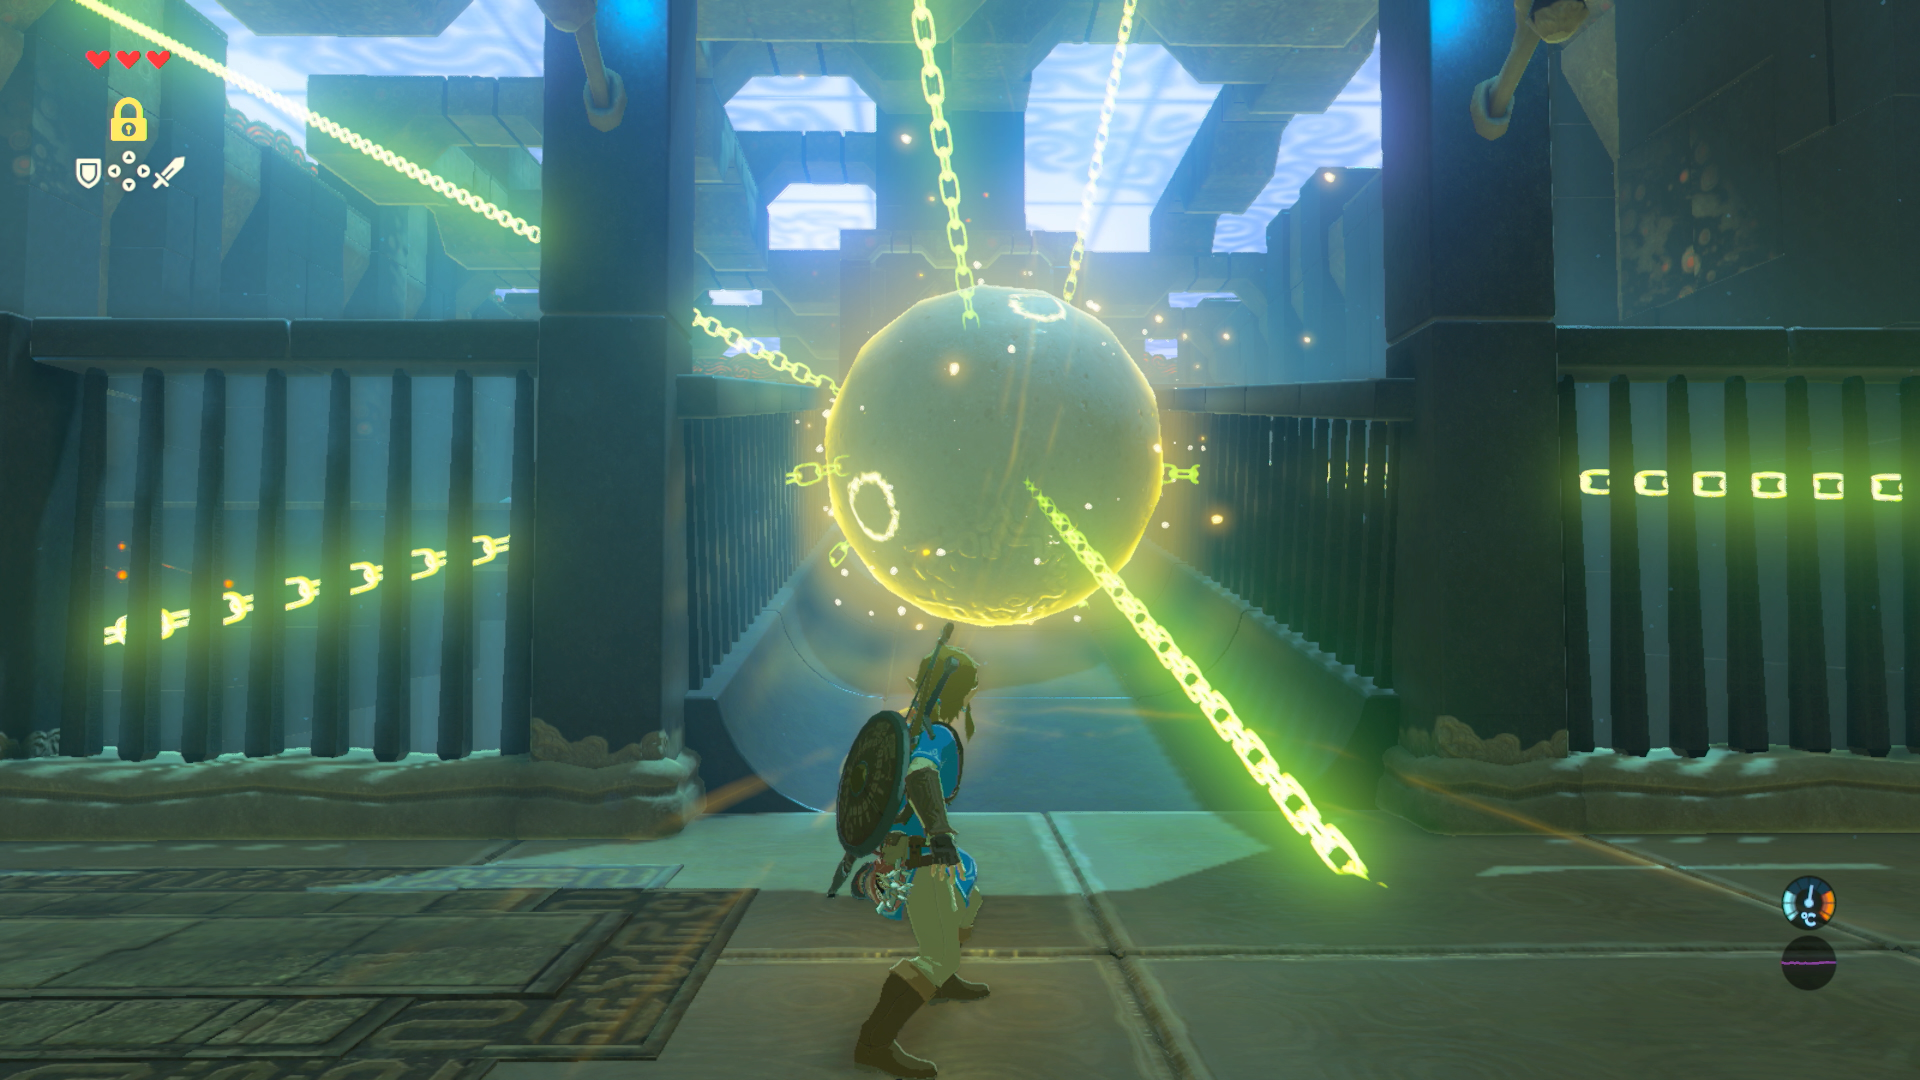 Zelda Breath of The Wild Cemu 60 FPS Hack In The Works